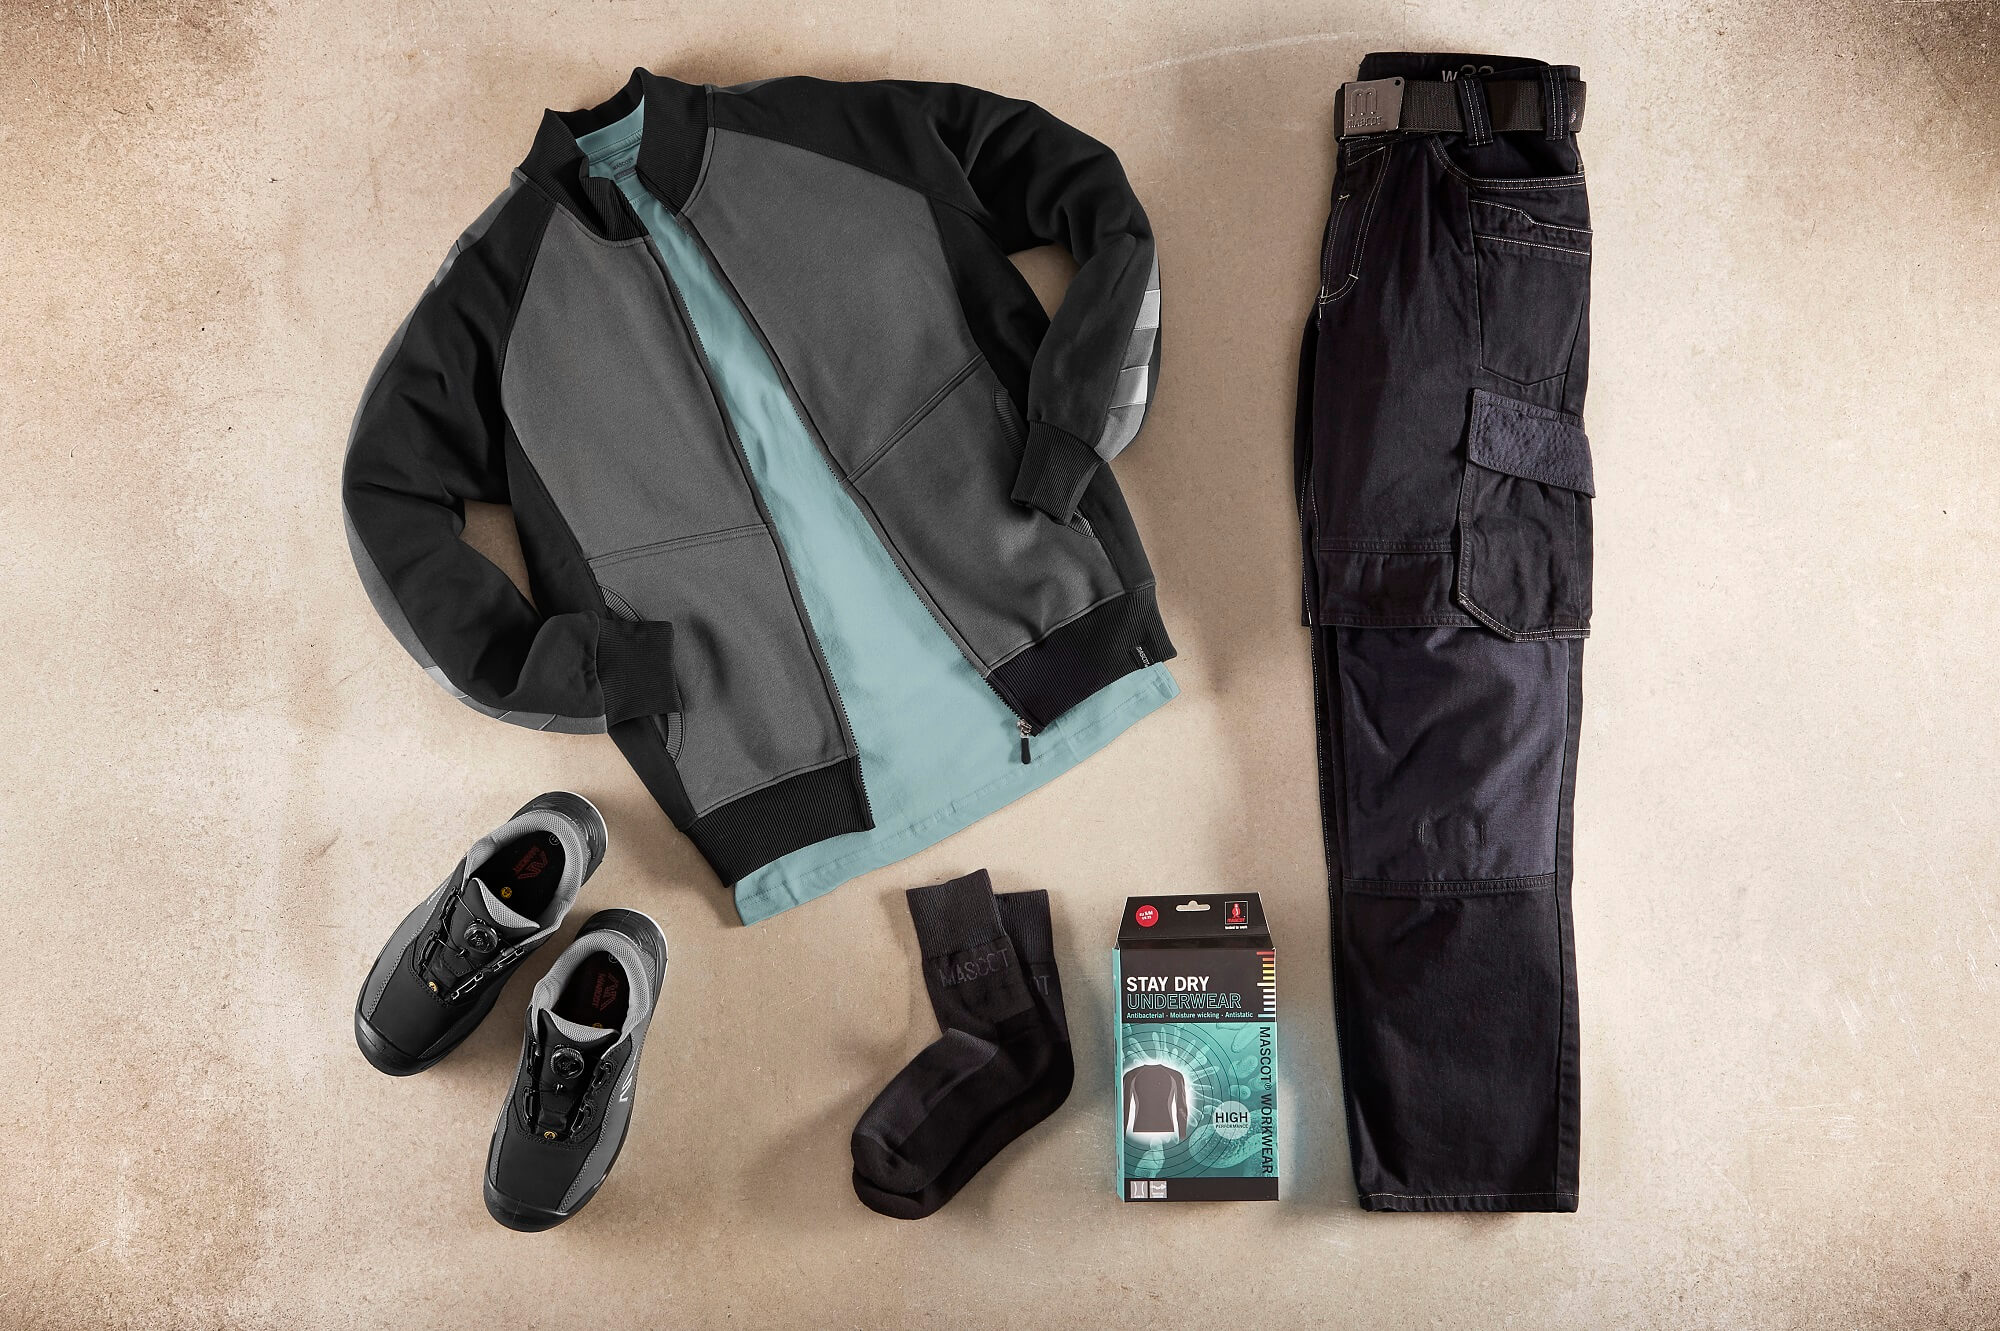 Grey - Zipped Jumper, T-shirt, Work Trousers & Safety Shoe - Collage